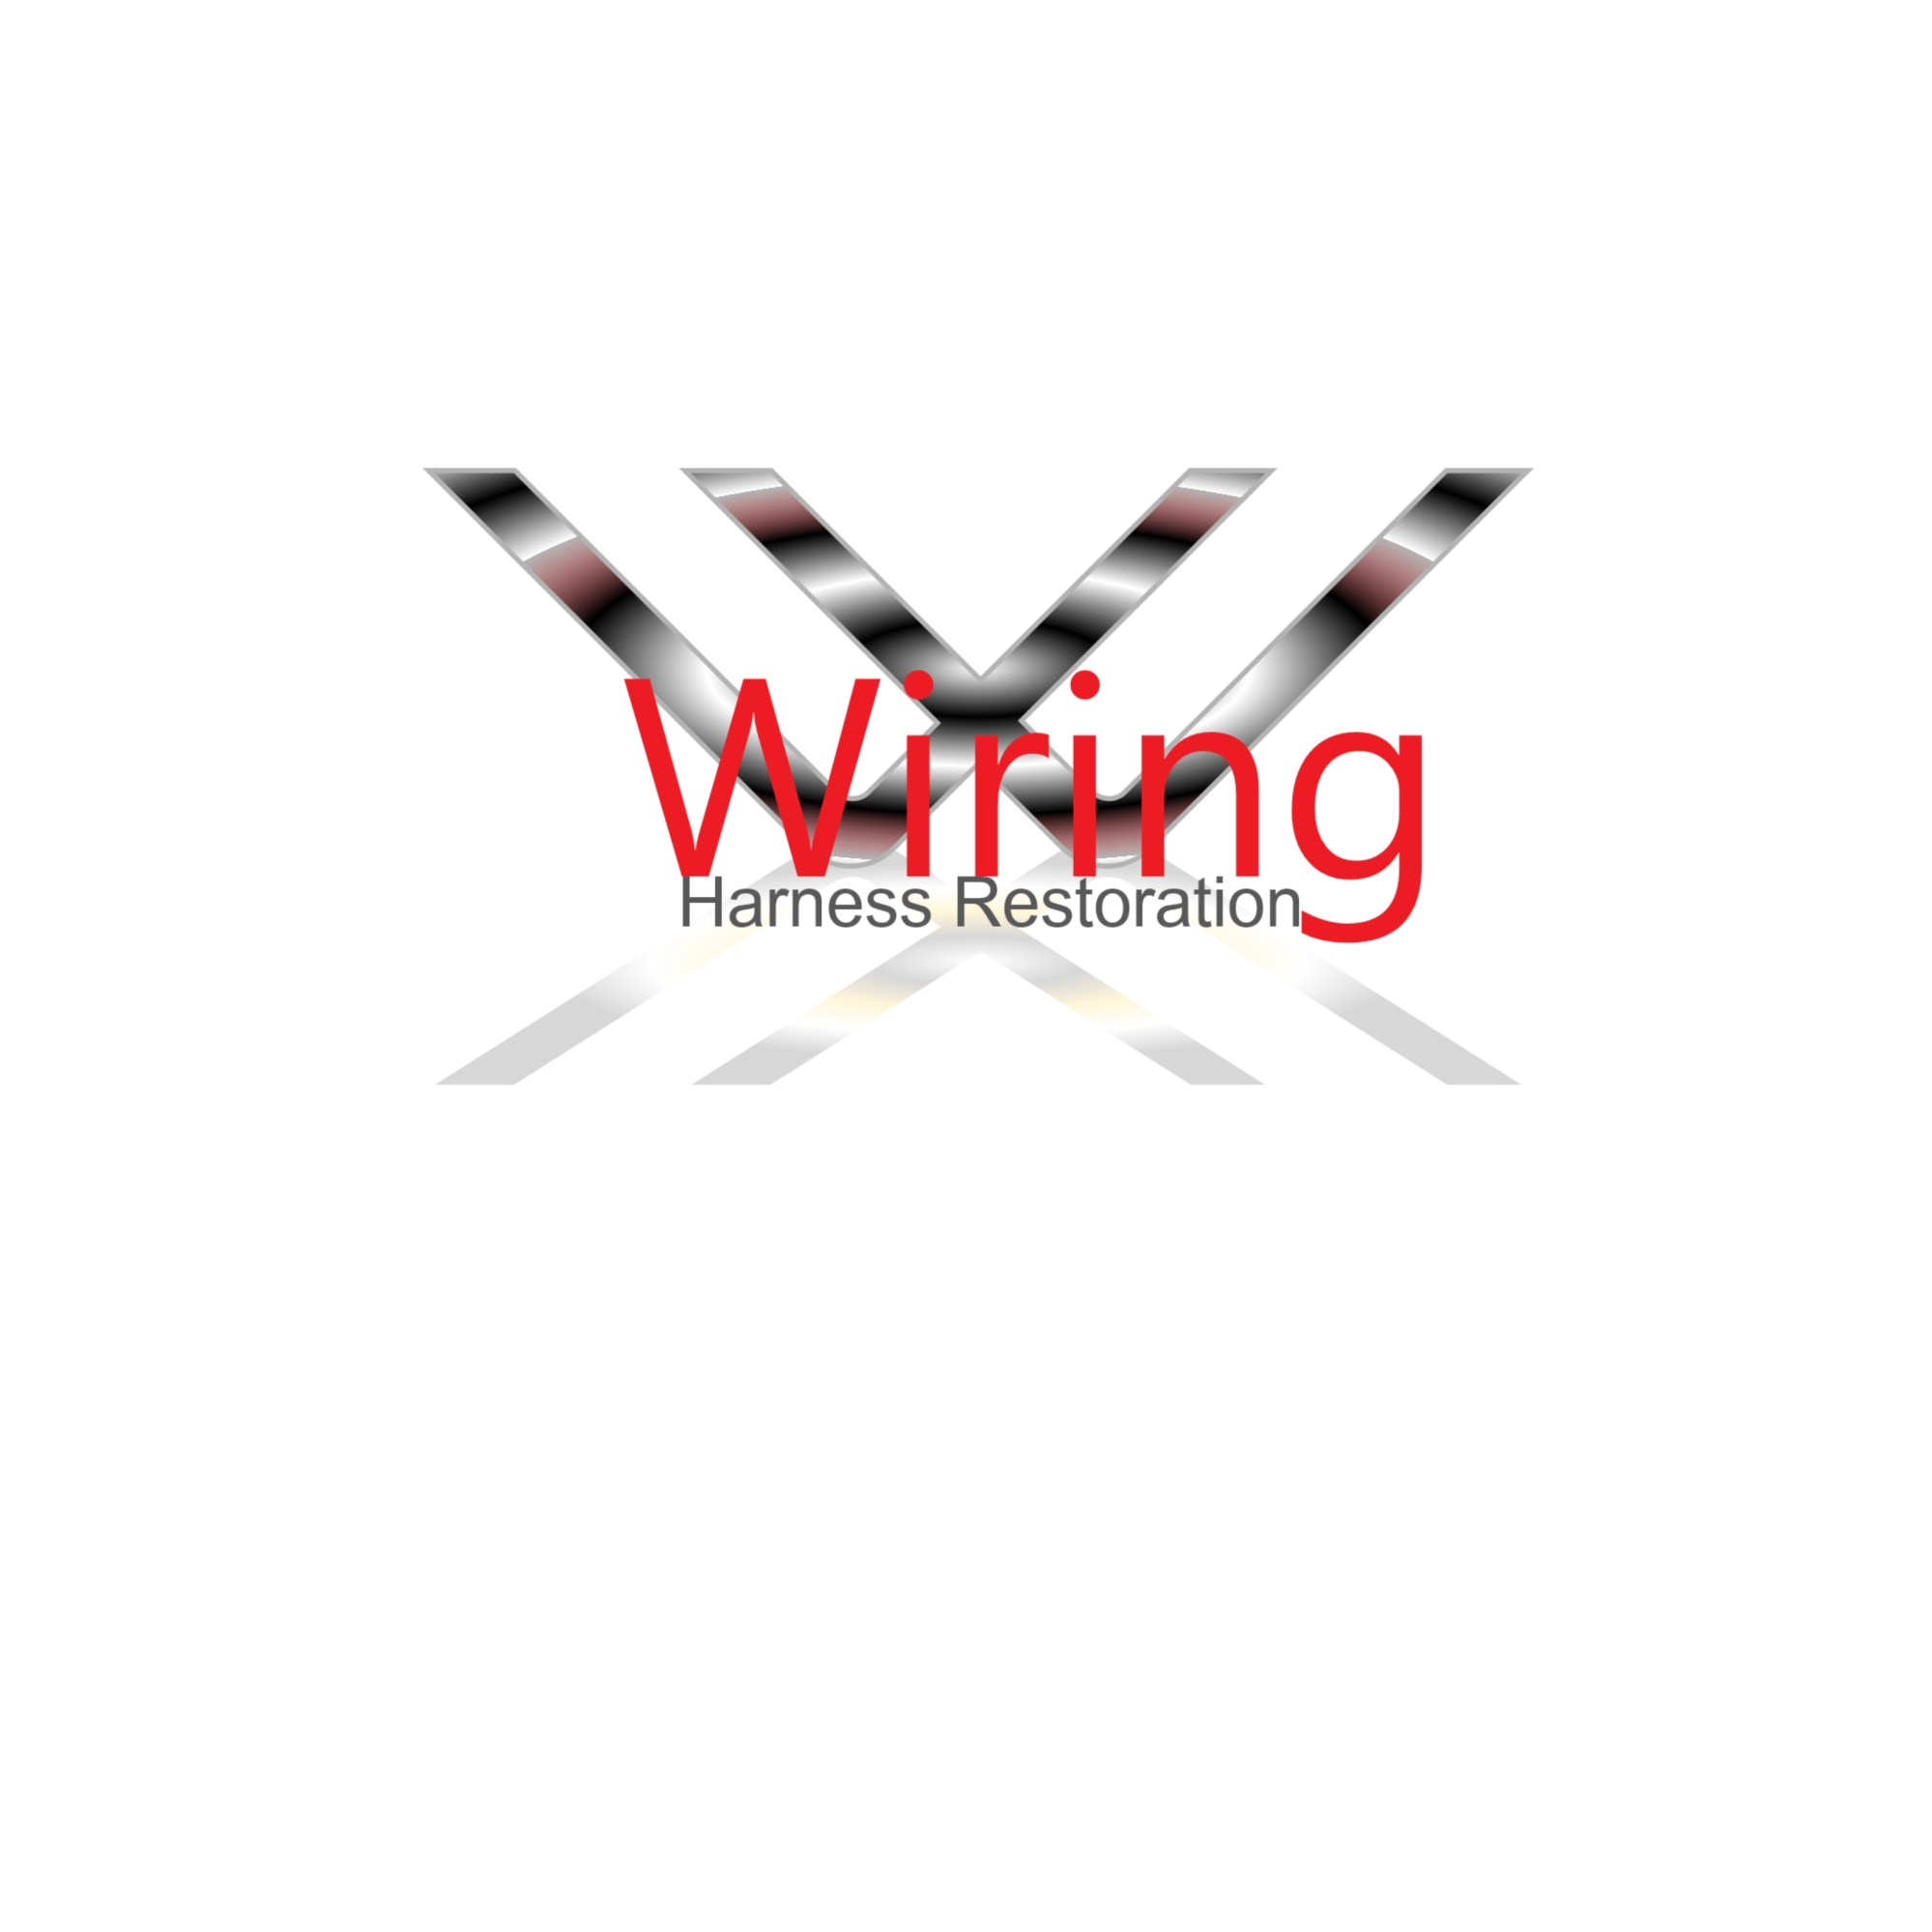 hight resolution of wire harness logo wiring diagram database wire harness logo